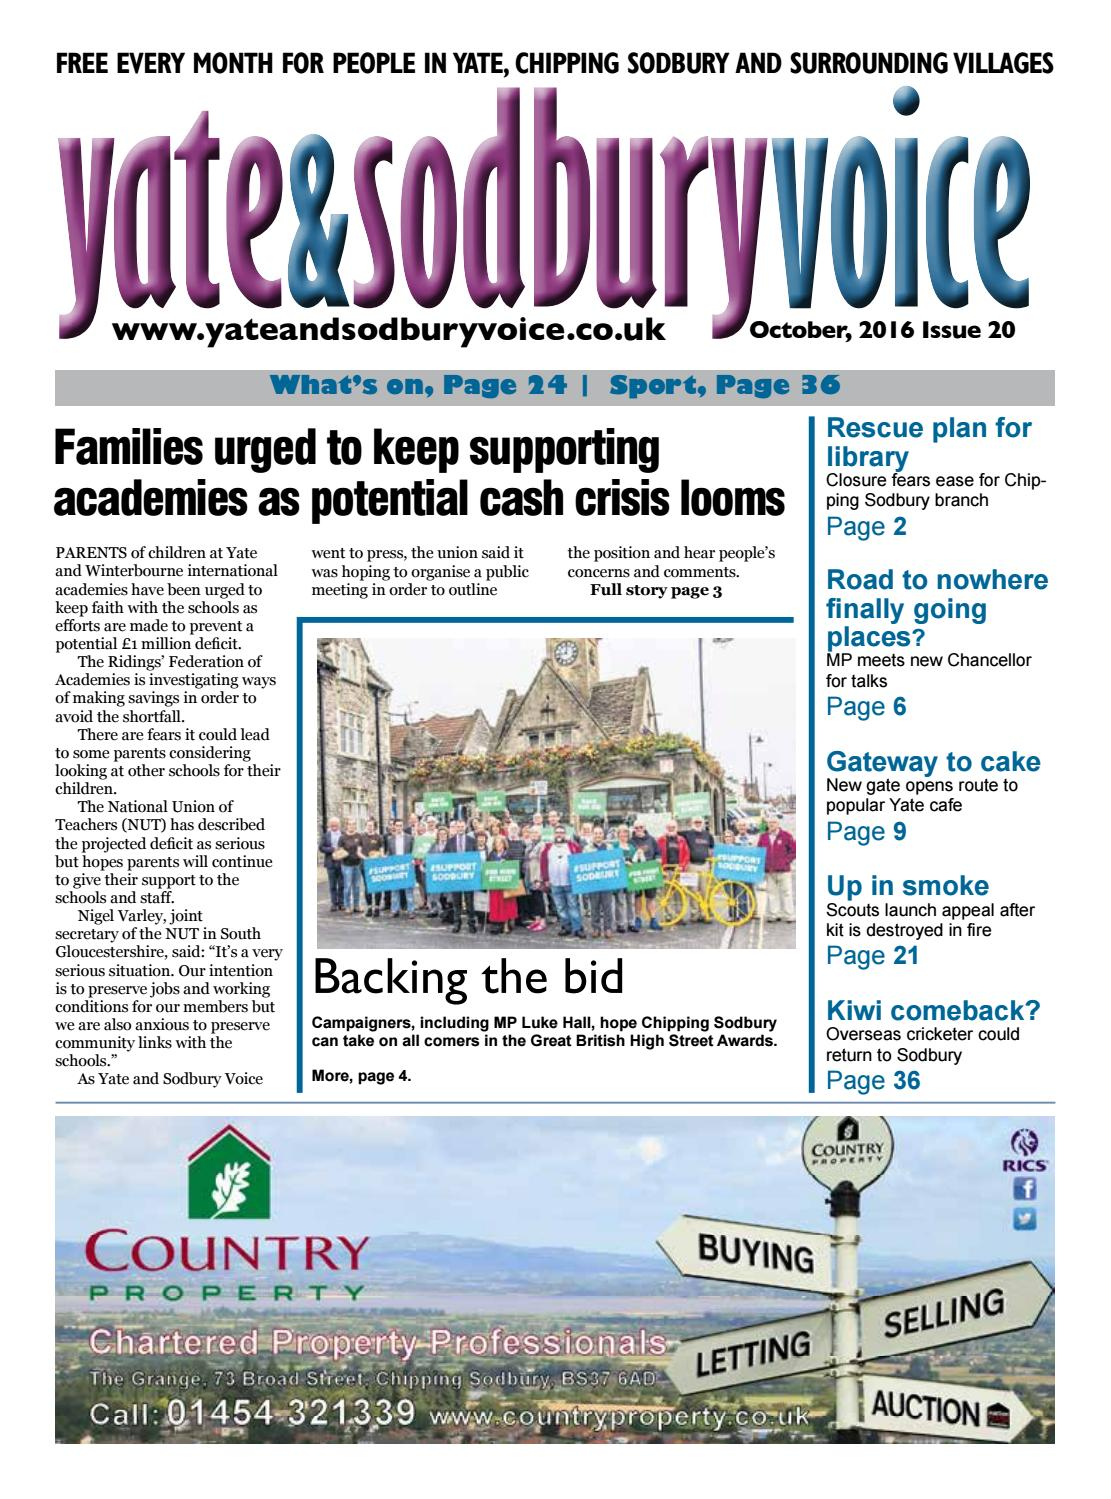 Yate & Chipping Sodbury Voice Newspaper October 2016 by Richard Drew at Yate and Sodbury Voice - issuu